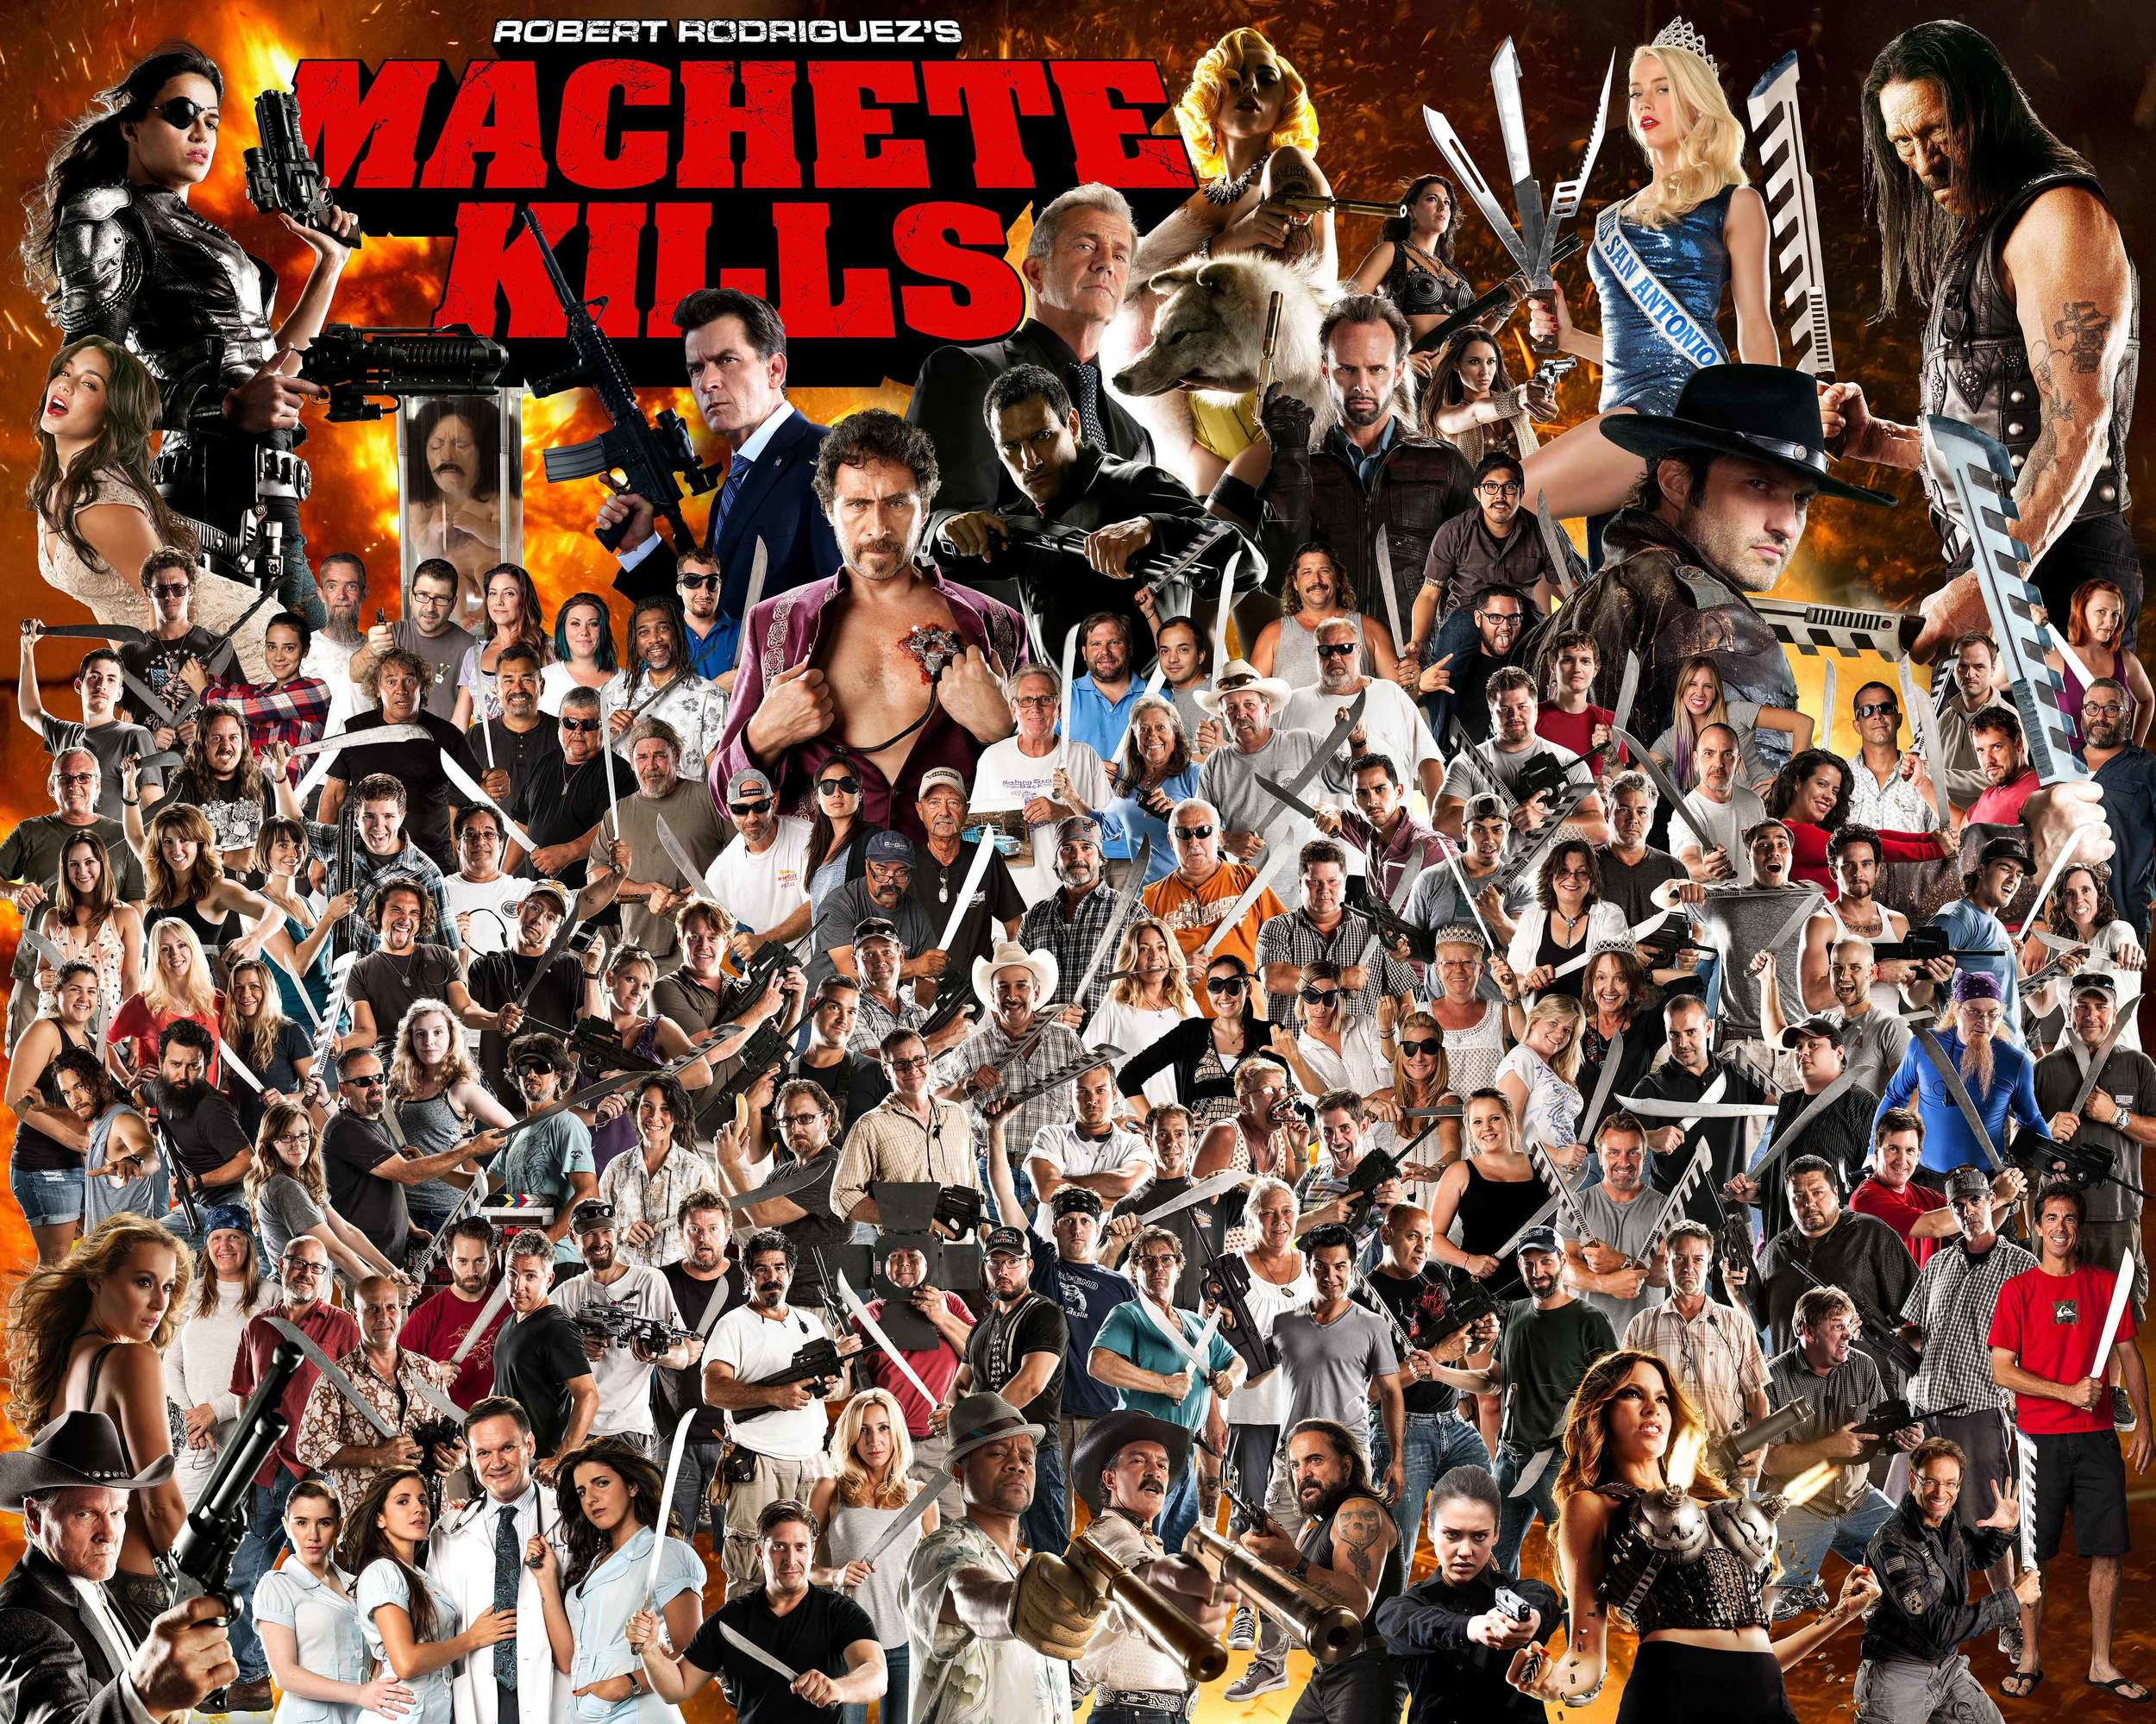 Machete-Kills---Crew-Photo.jpg